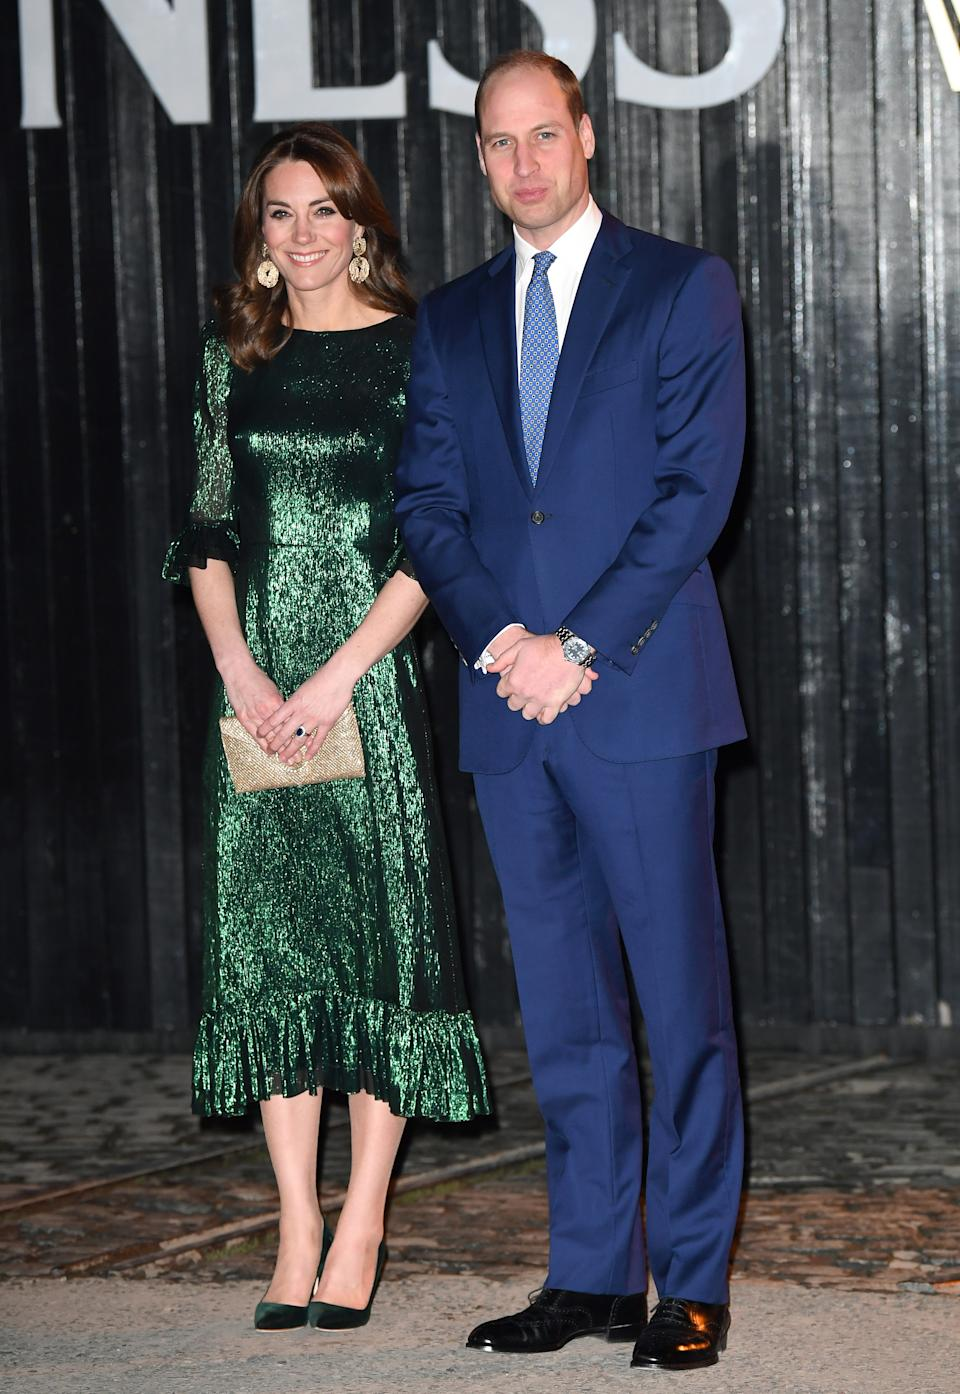 Duchess Catherine wore the Falconetti dress from The Vampire's Wife for the evening engagement in Dublin. (Getty)